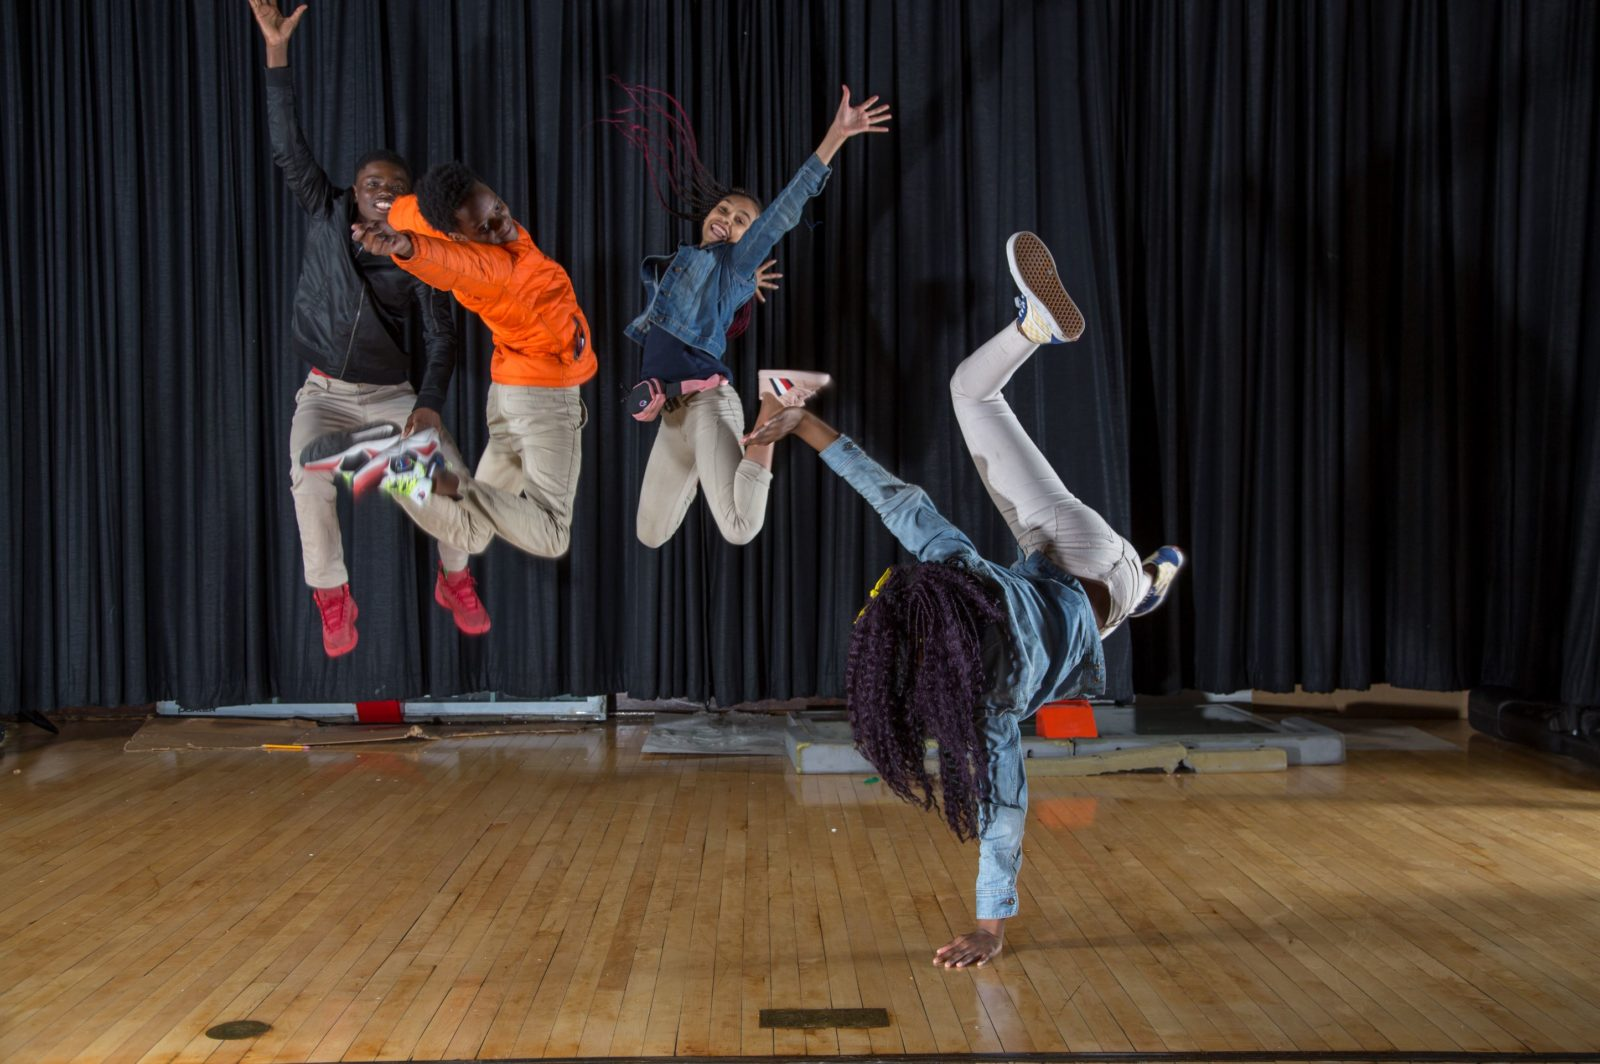 photo by Cecil McDonald Jr. from moment in time exhibition of 8th grade students jumping to signify joy